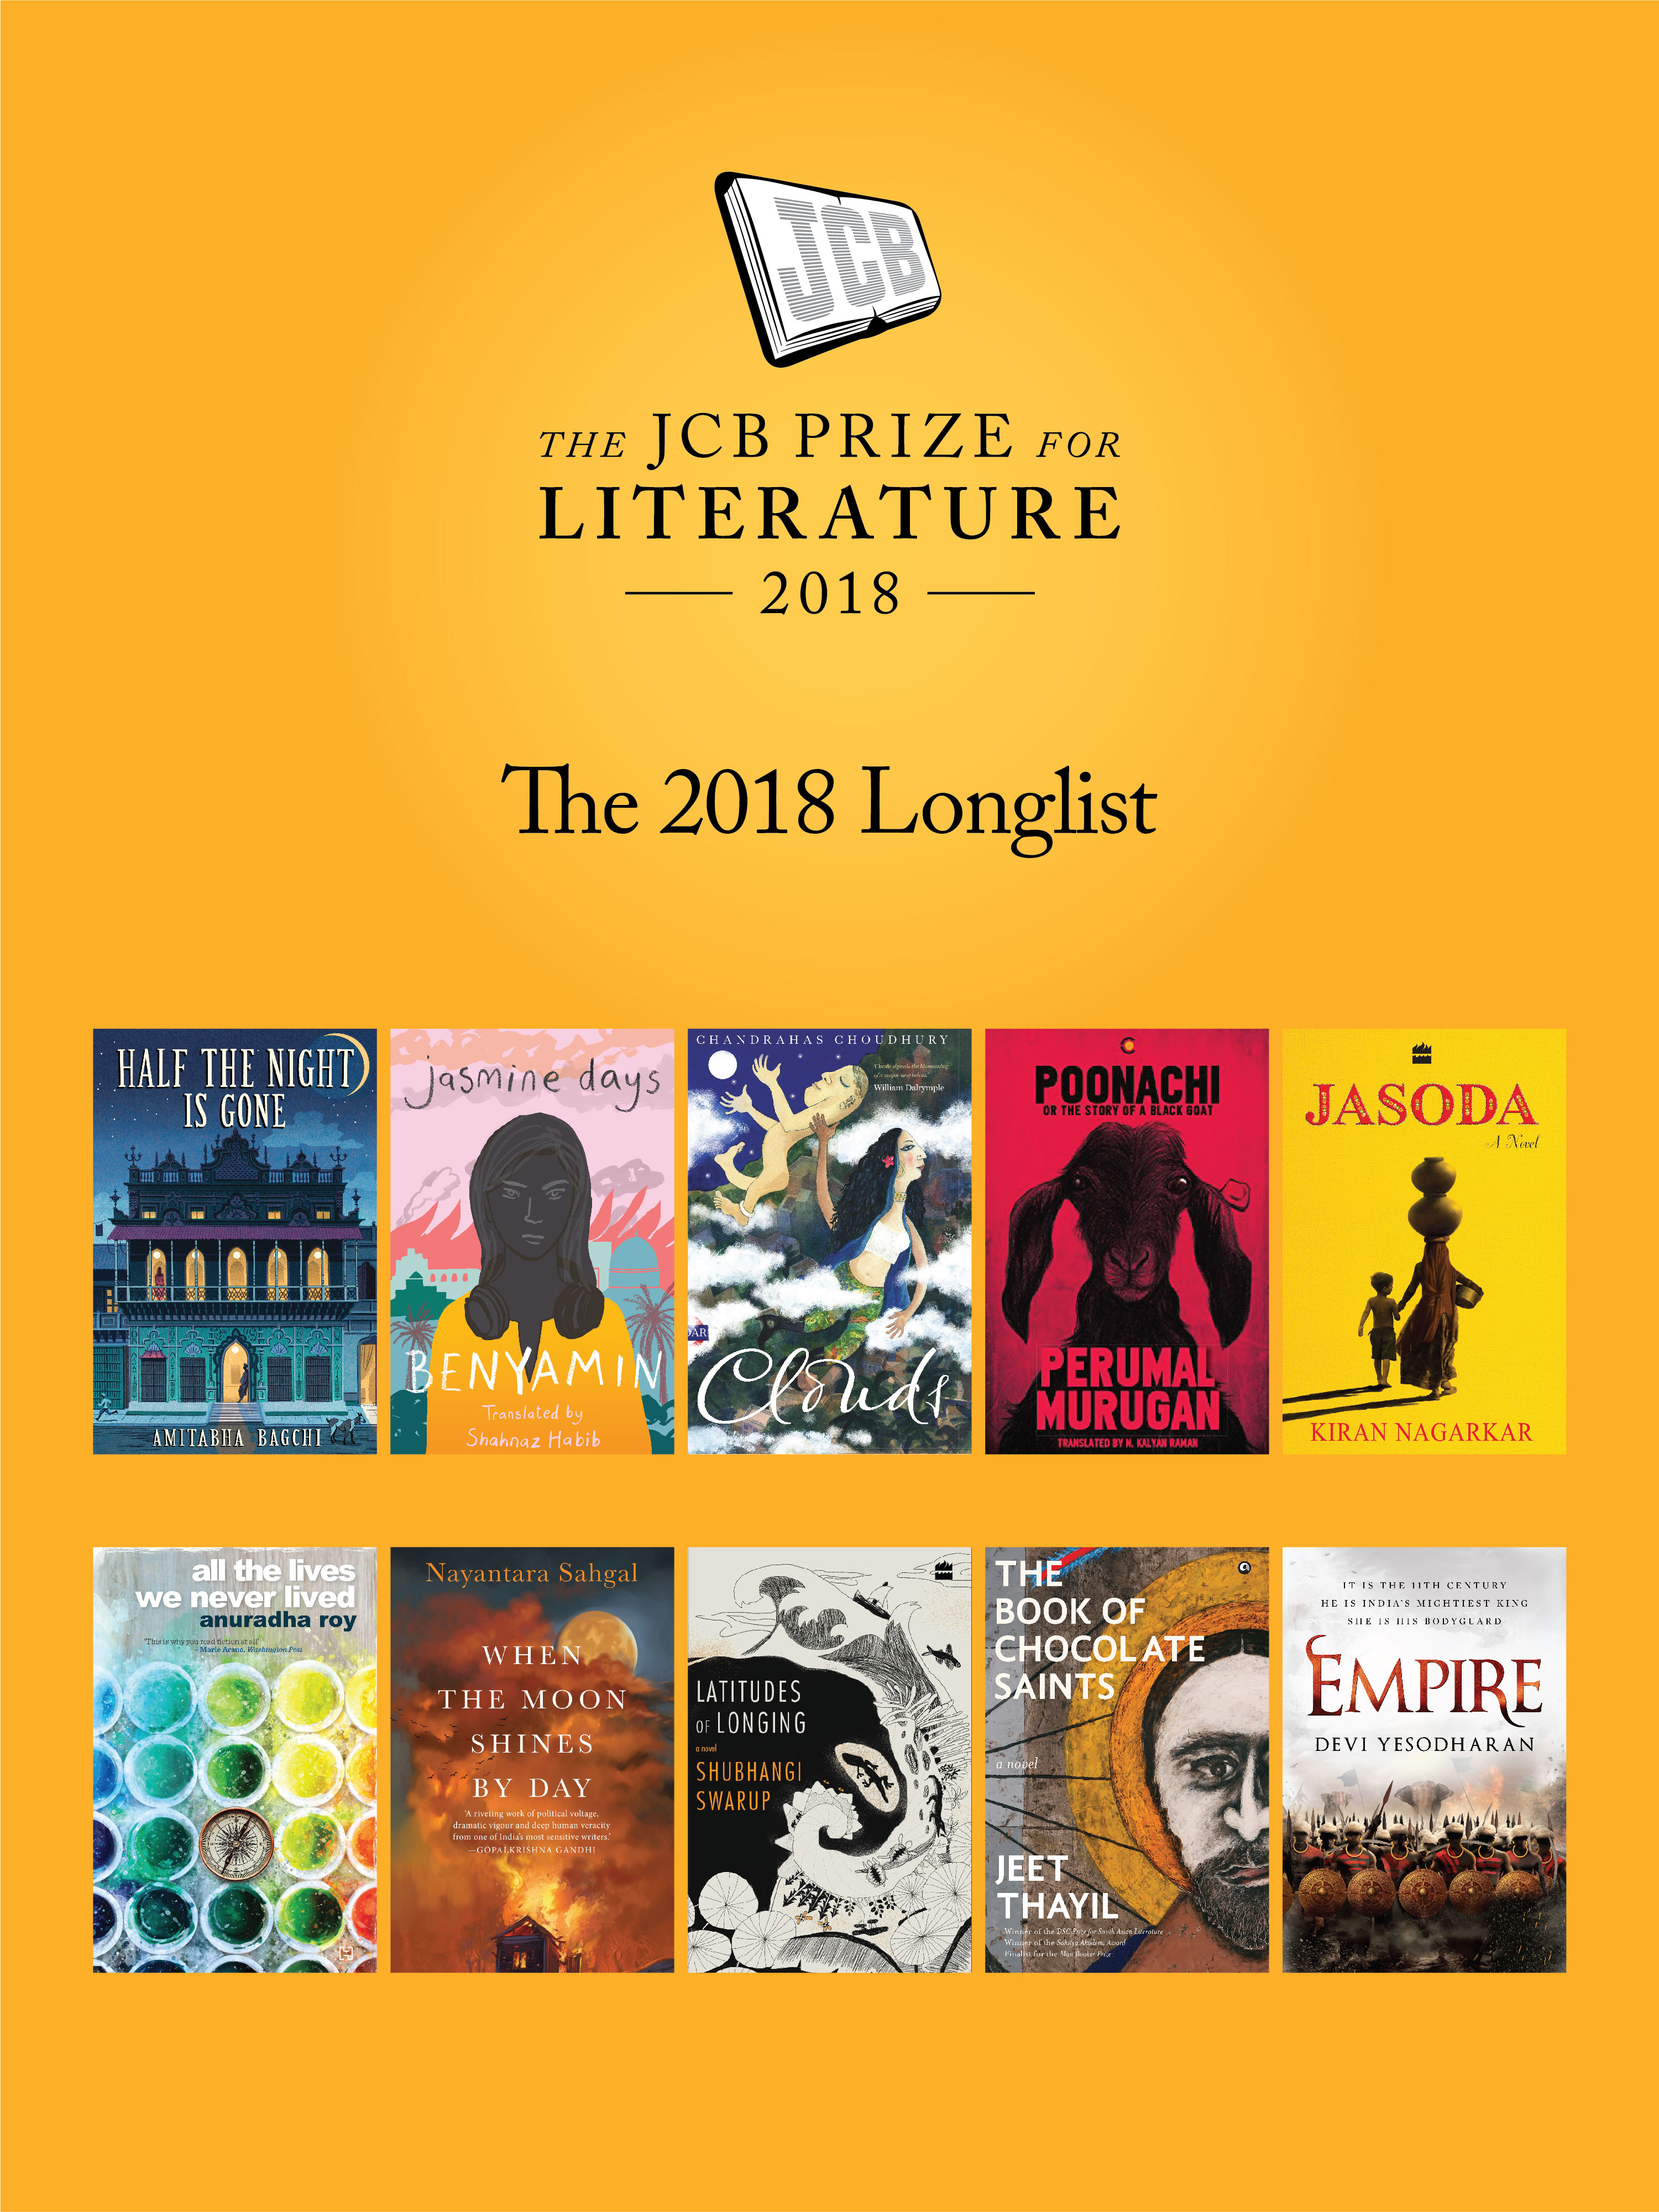 The 2018 Jcb Prize For Literature Longlist Displays The Diversity Of